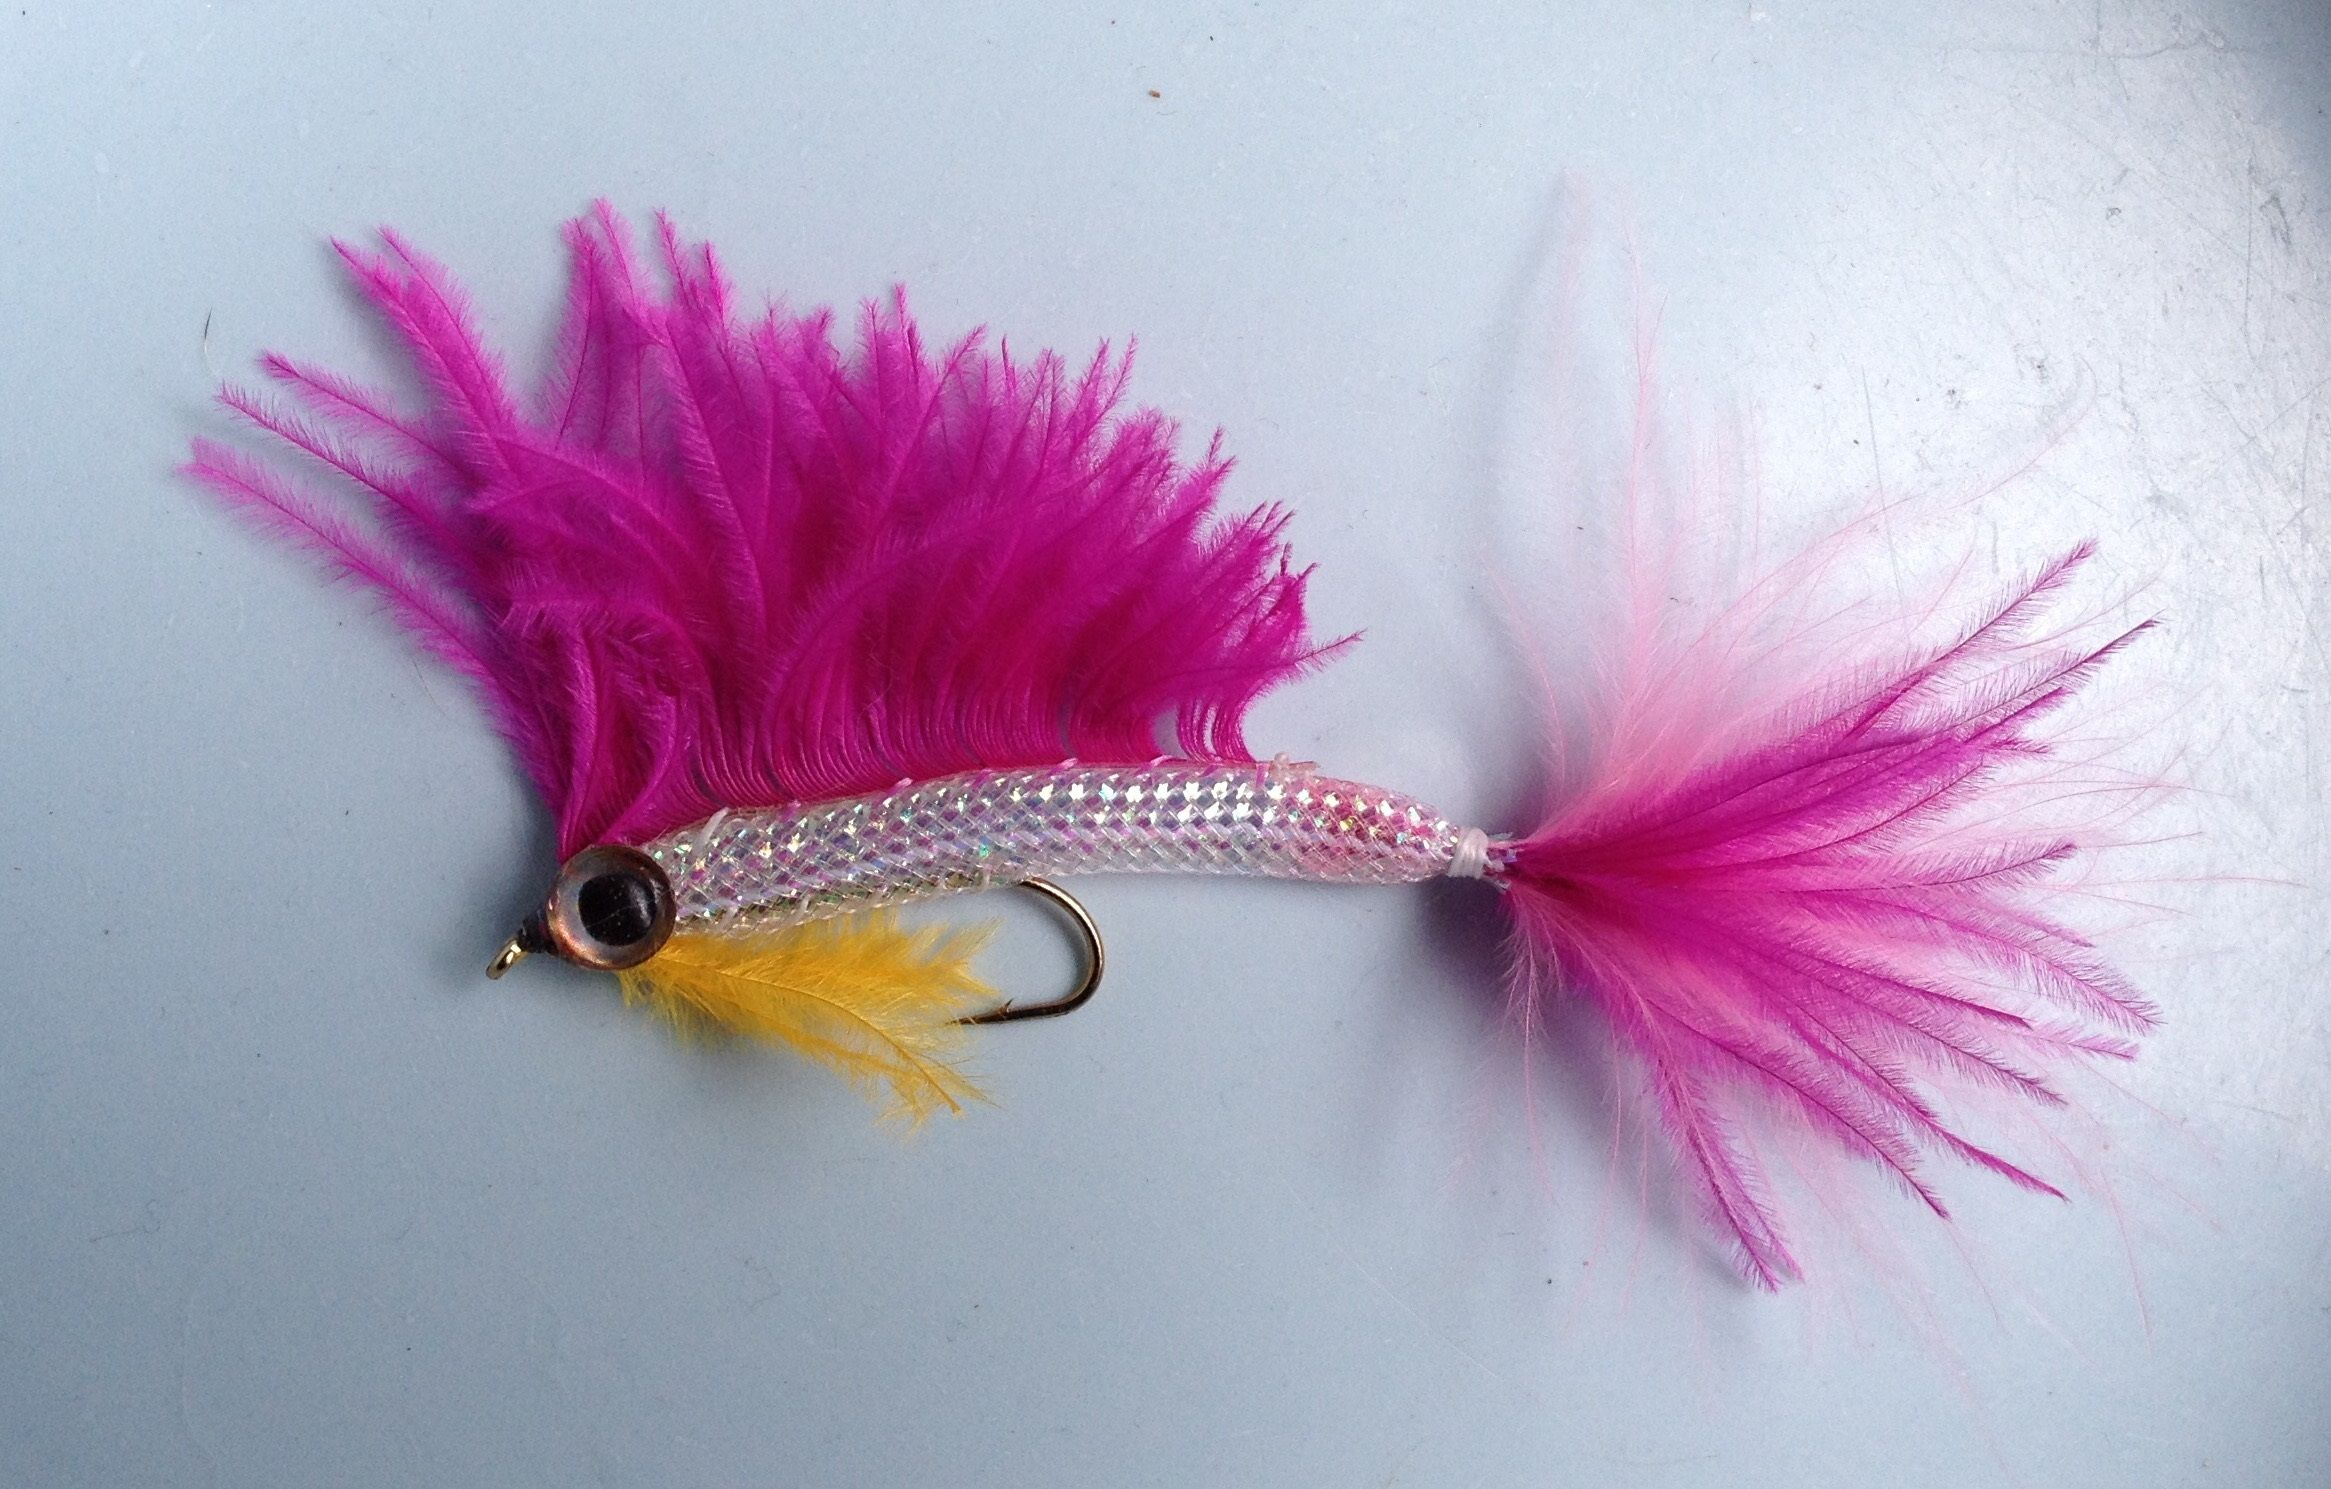 This is a Floozy Minnow. Size 4 hook, EZ body, and ostrich feathers.